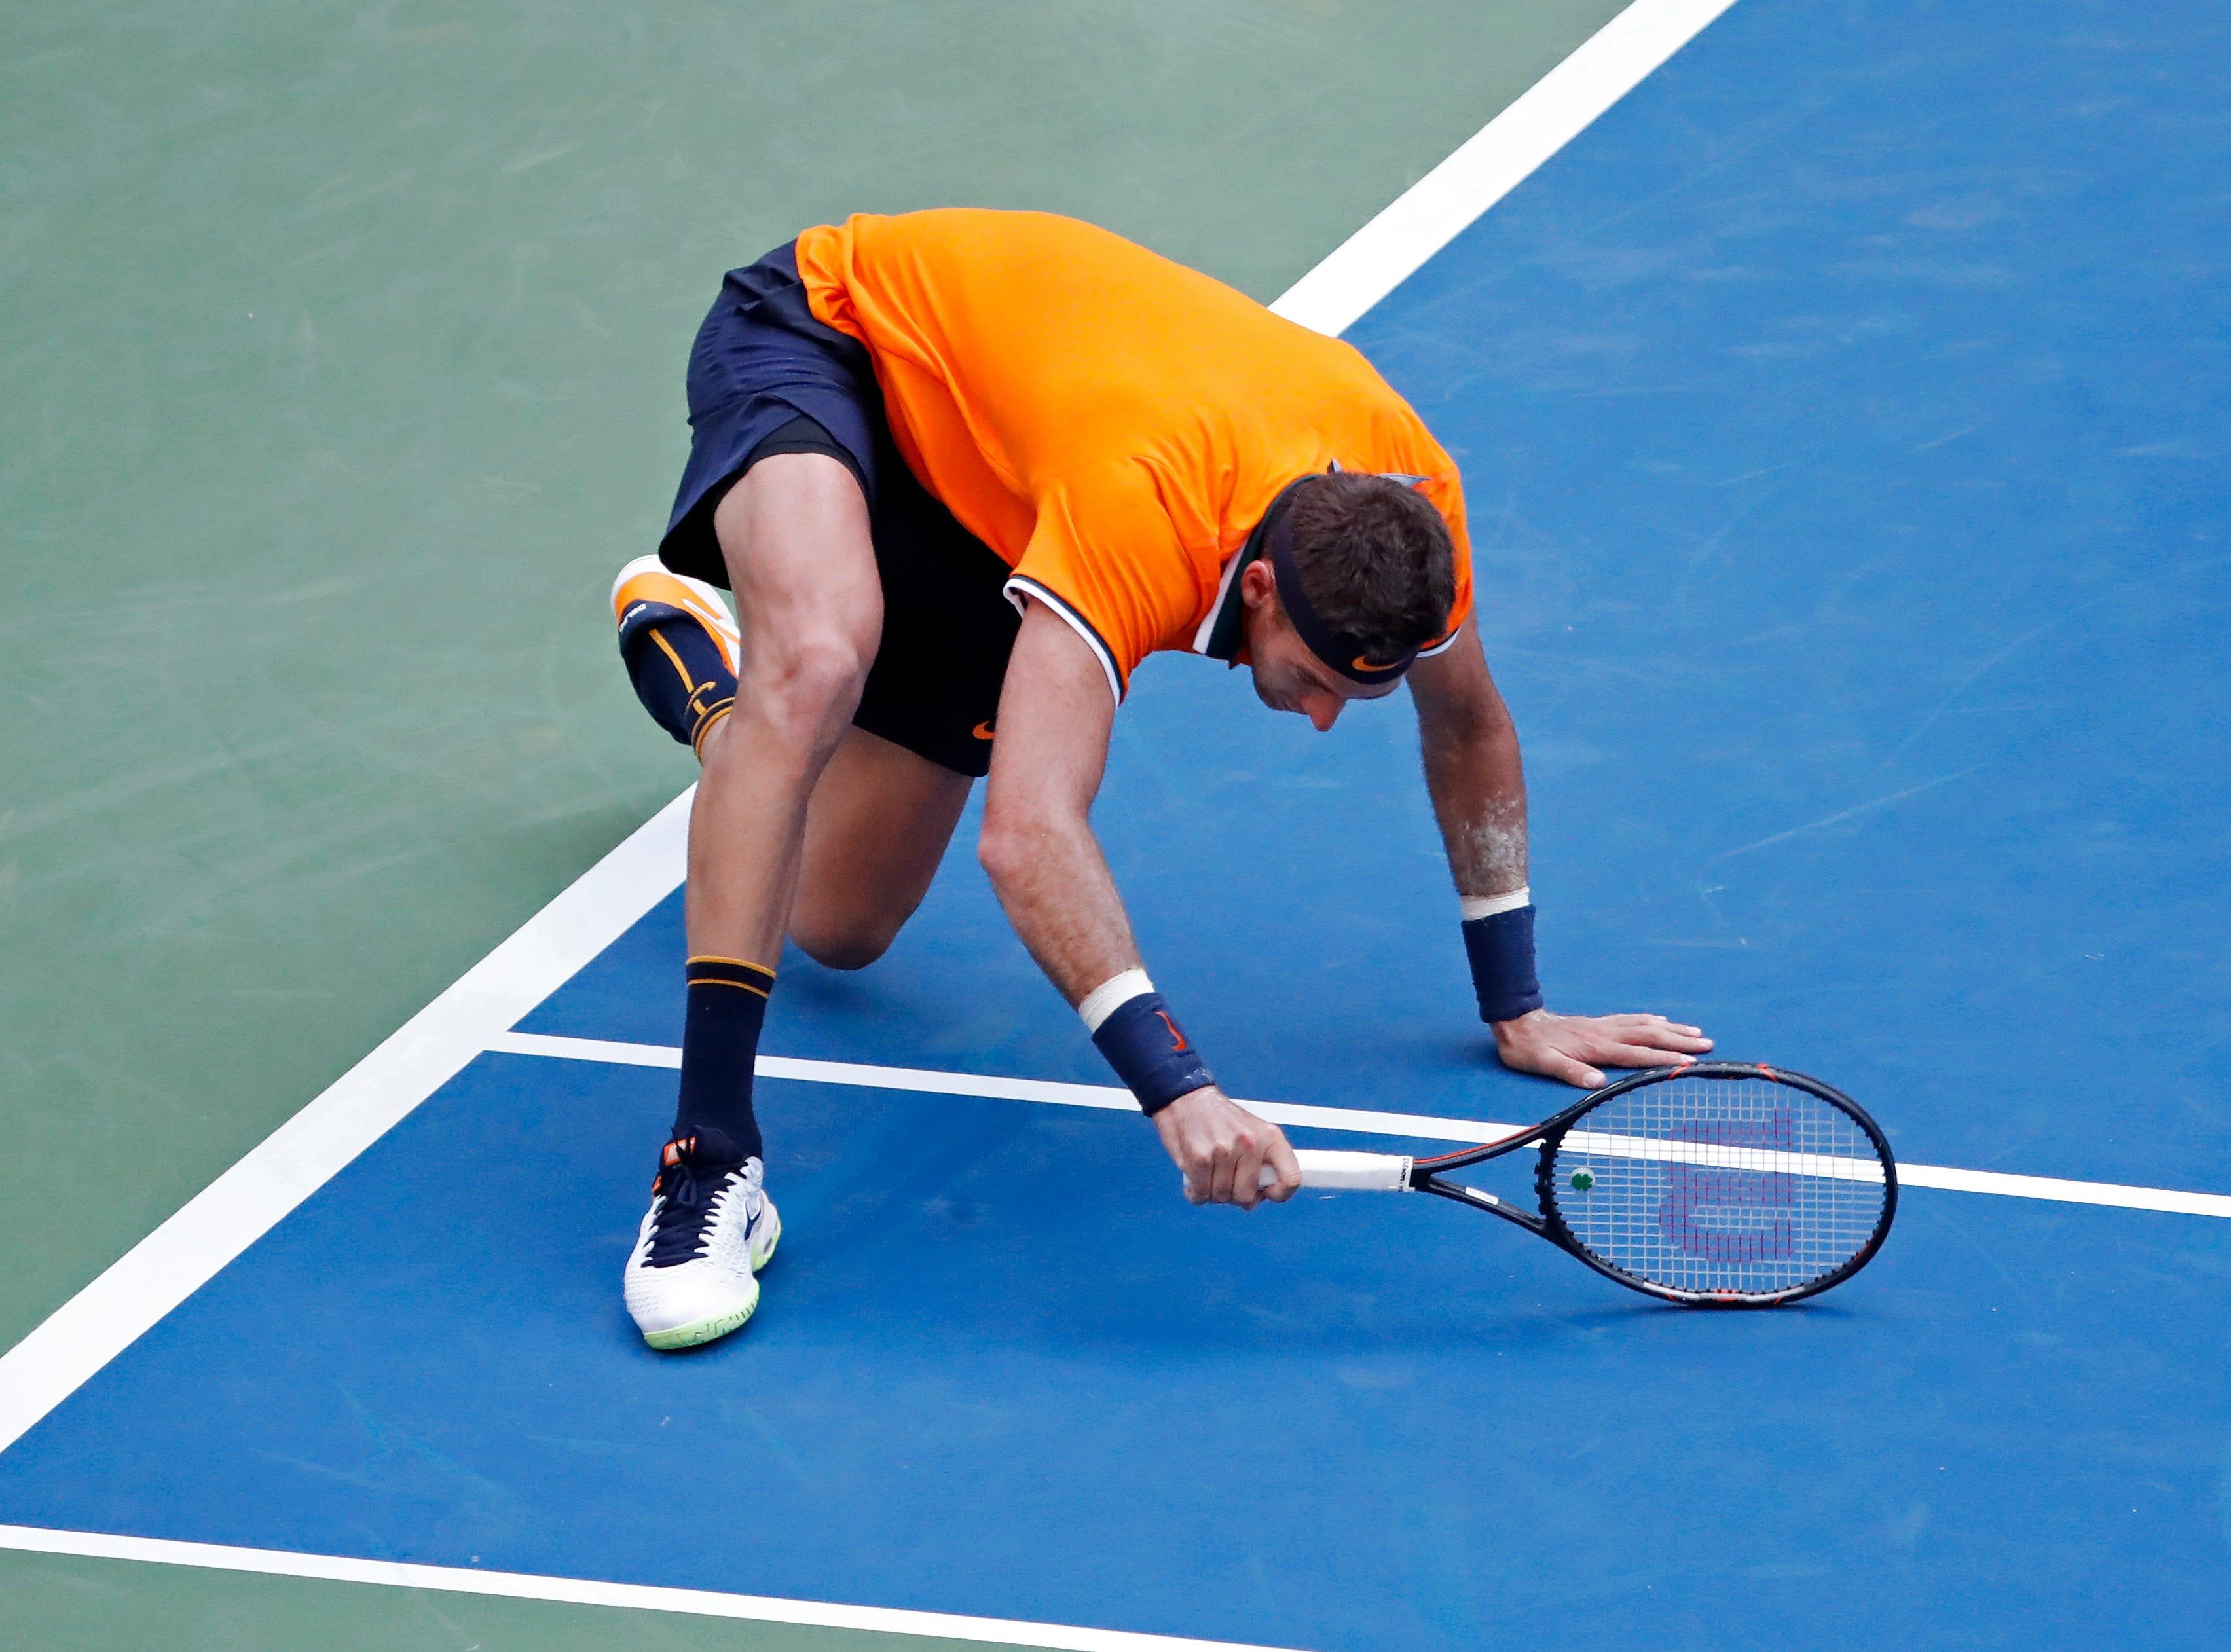 Juan Martin del Potro slips after hitting a forehand against Denis Kudla.